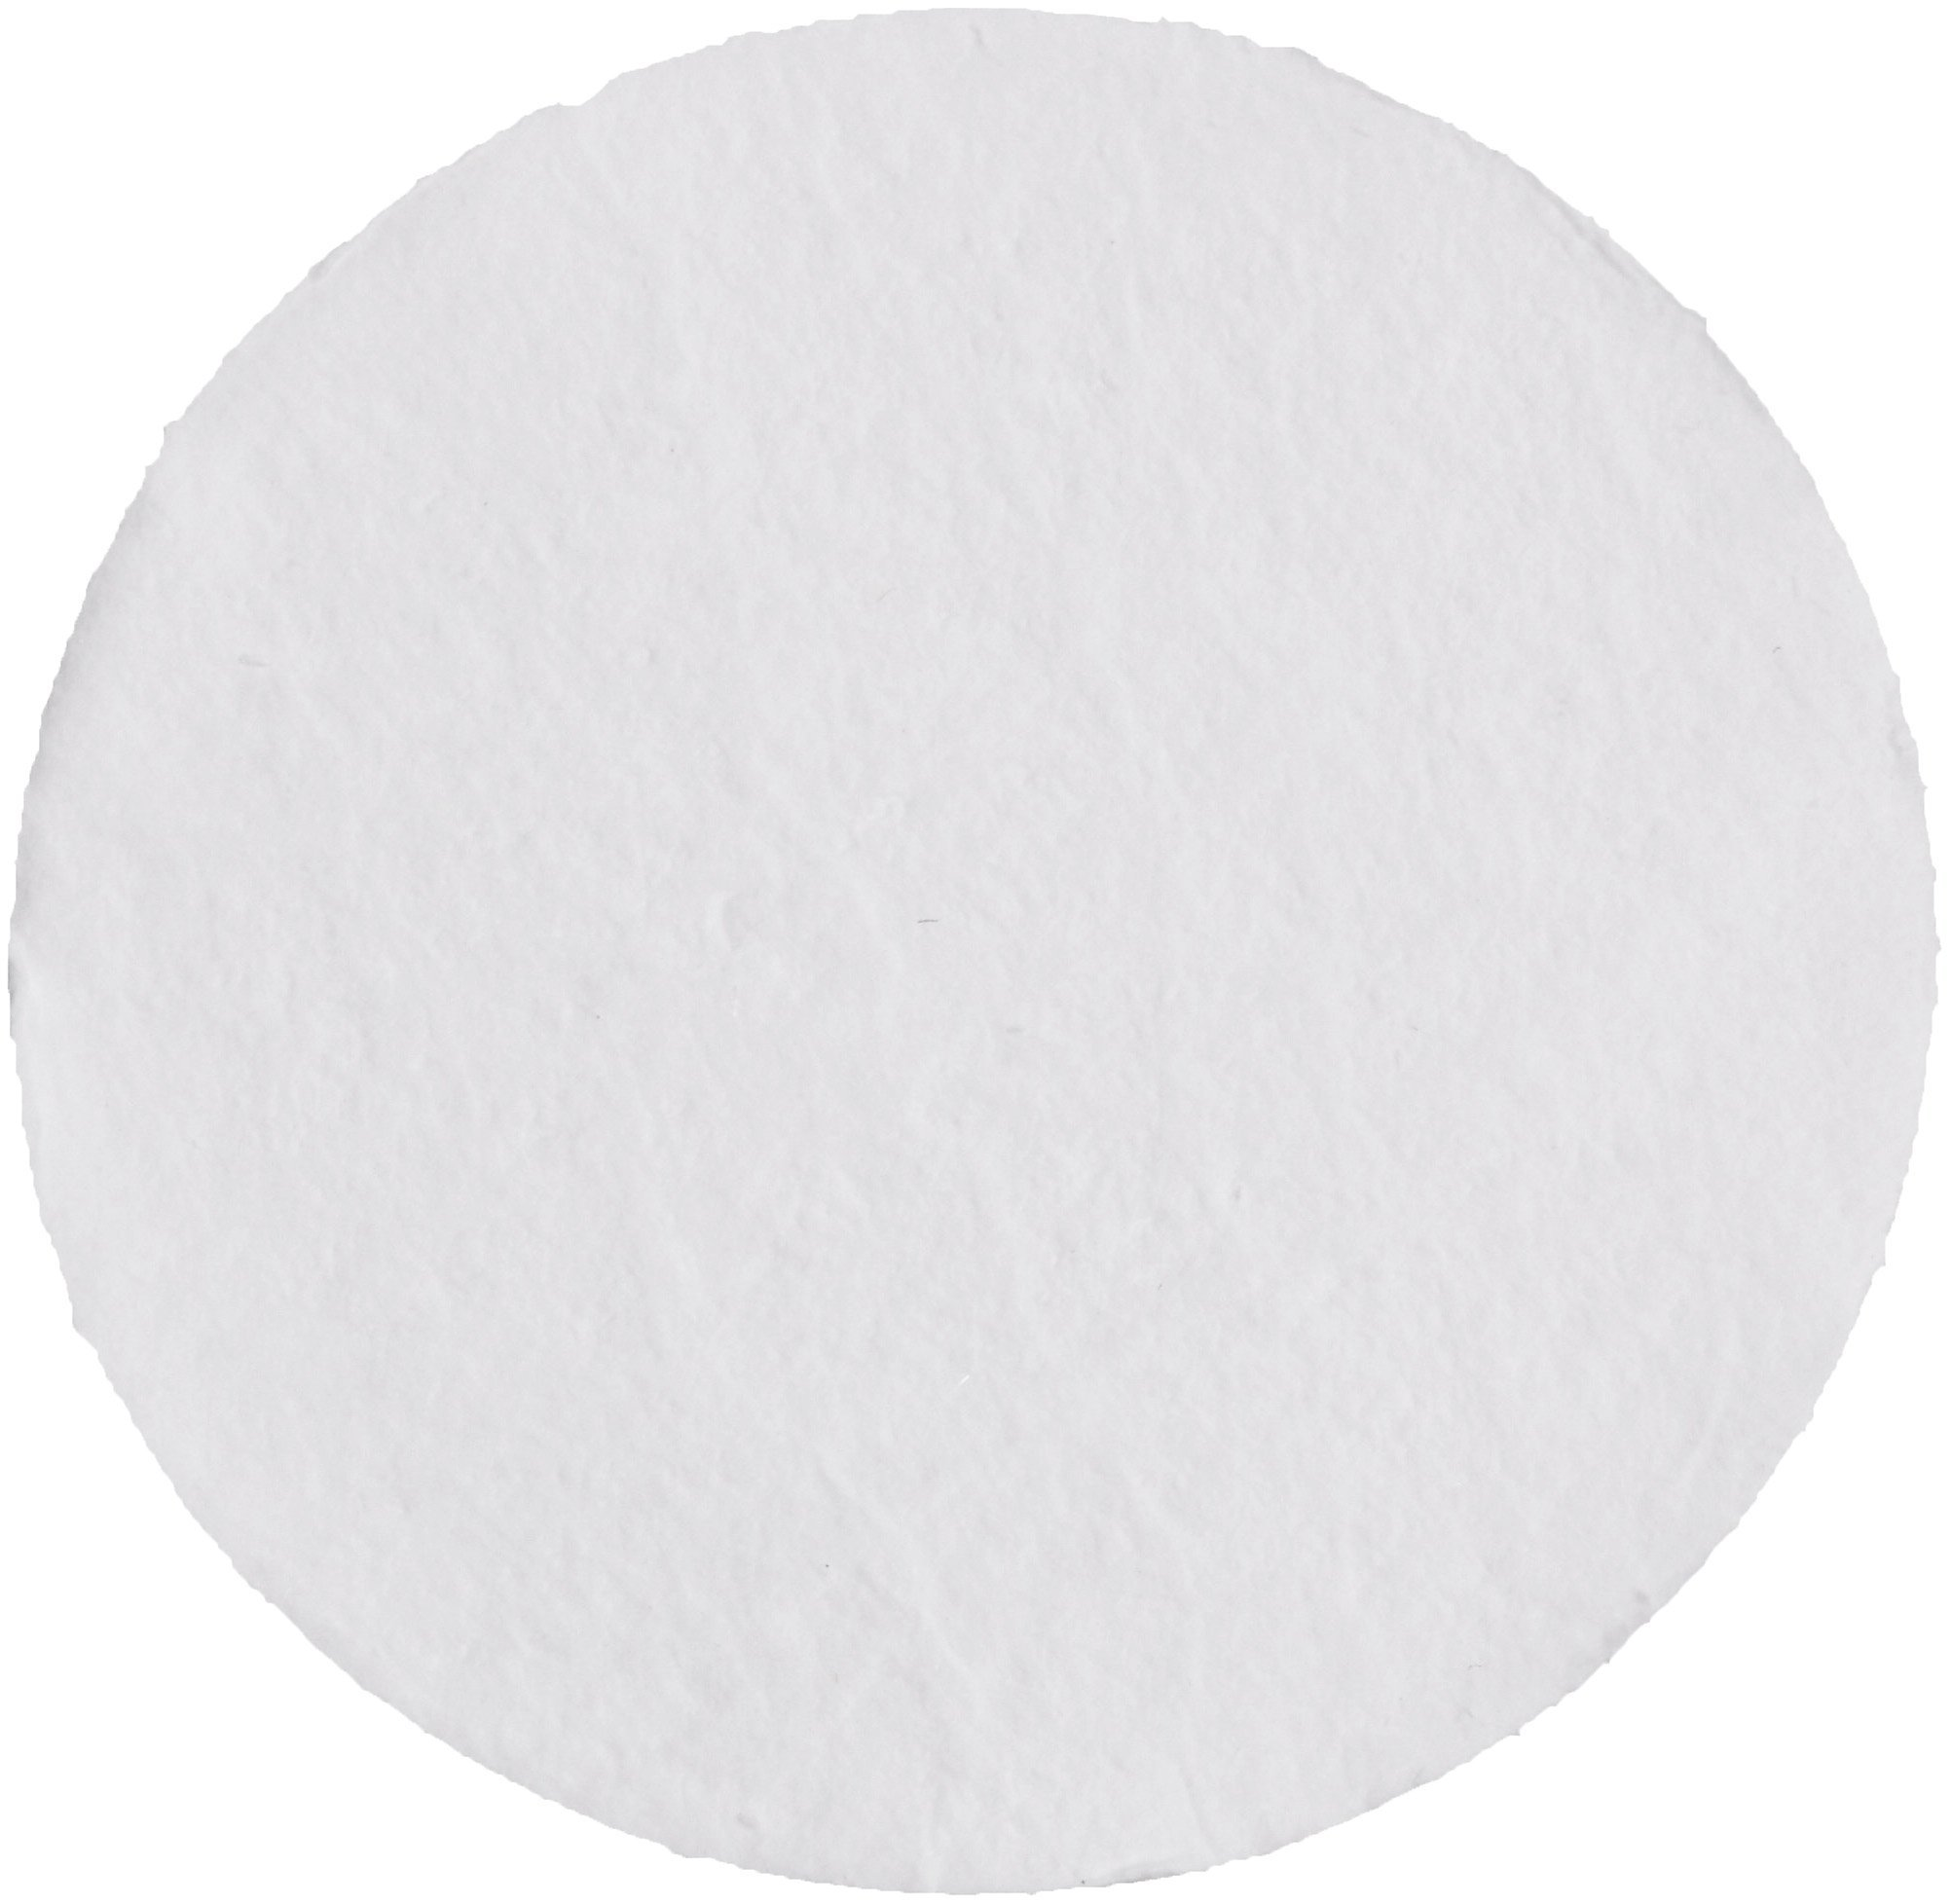 Whatman 1004-110 Quantitative Filter Paper Circles, 20-25 Micron, 3.7 s/100mL/sq inch Flow Rate, Grade 4, 110mm Diameter (Pack of 100)